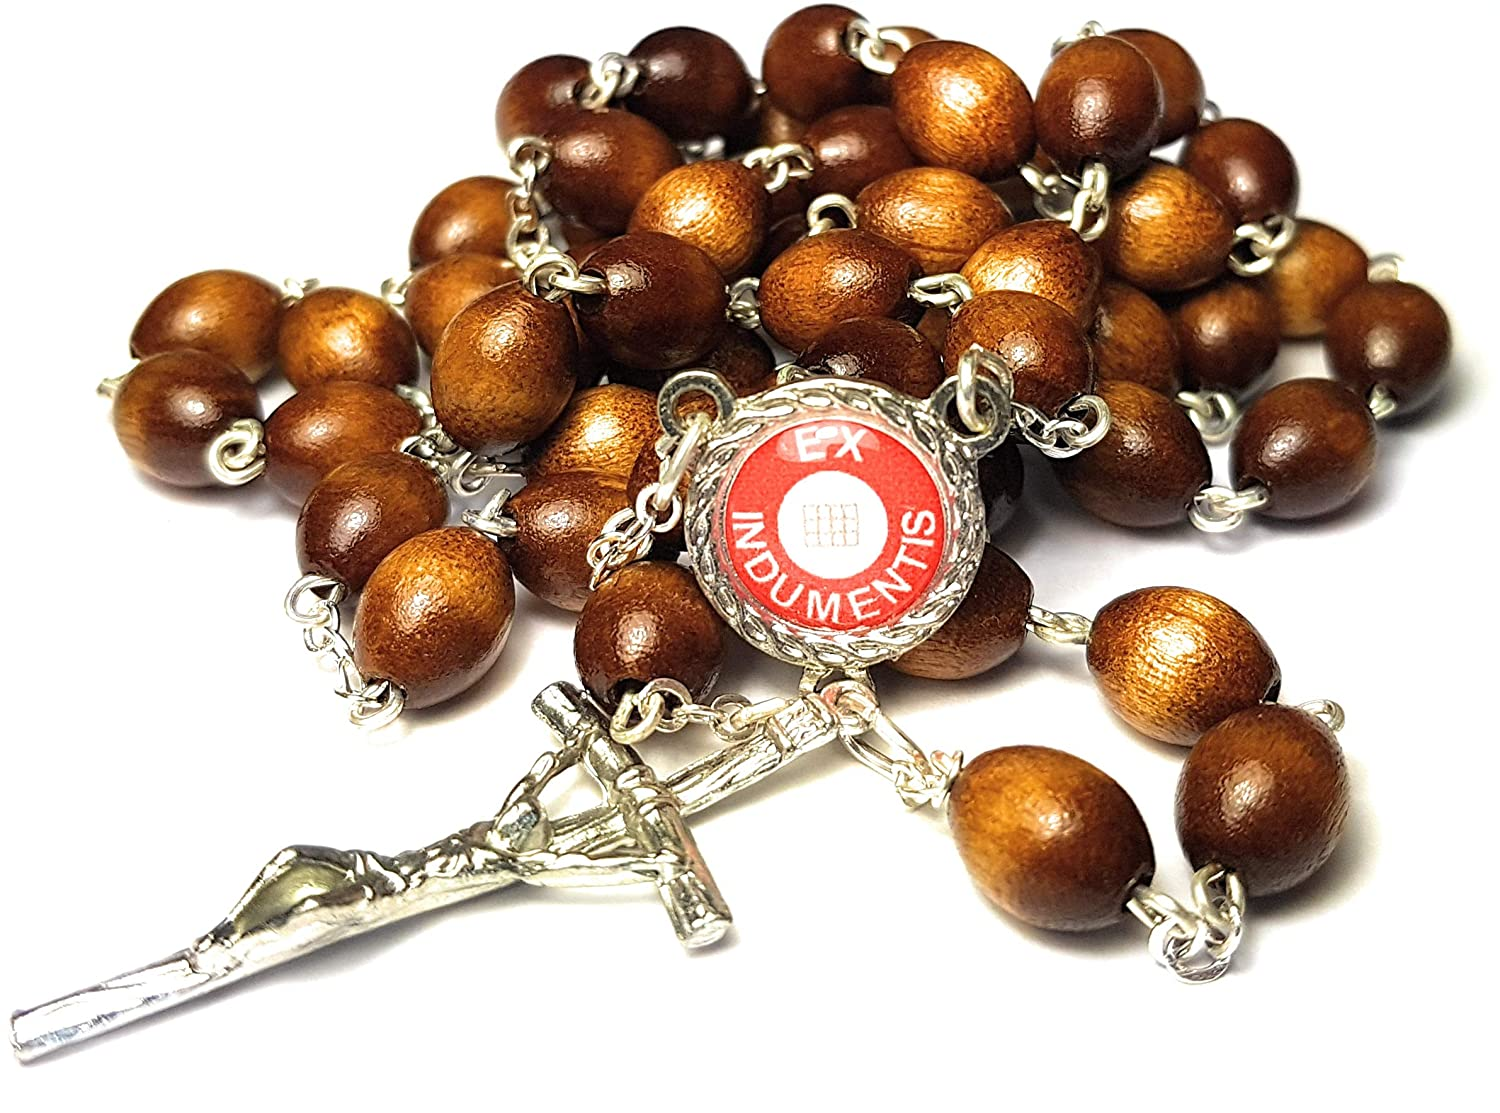 babies infants Relic Rosary 3rd class Saint Philomena Children Children Mary youth sterility lost causes Cherry priests The Universal Living Rosary Association Santa Filomena virgins